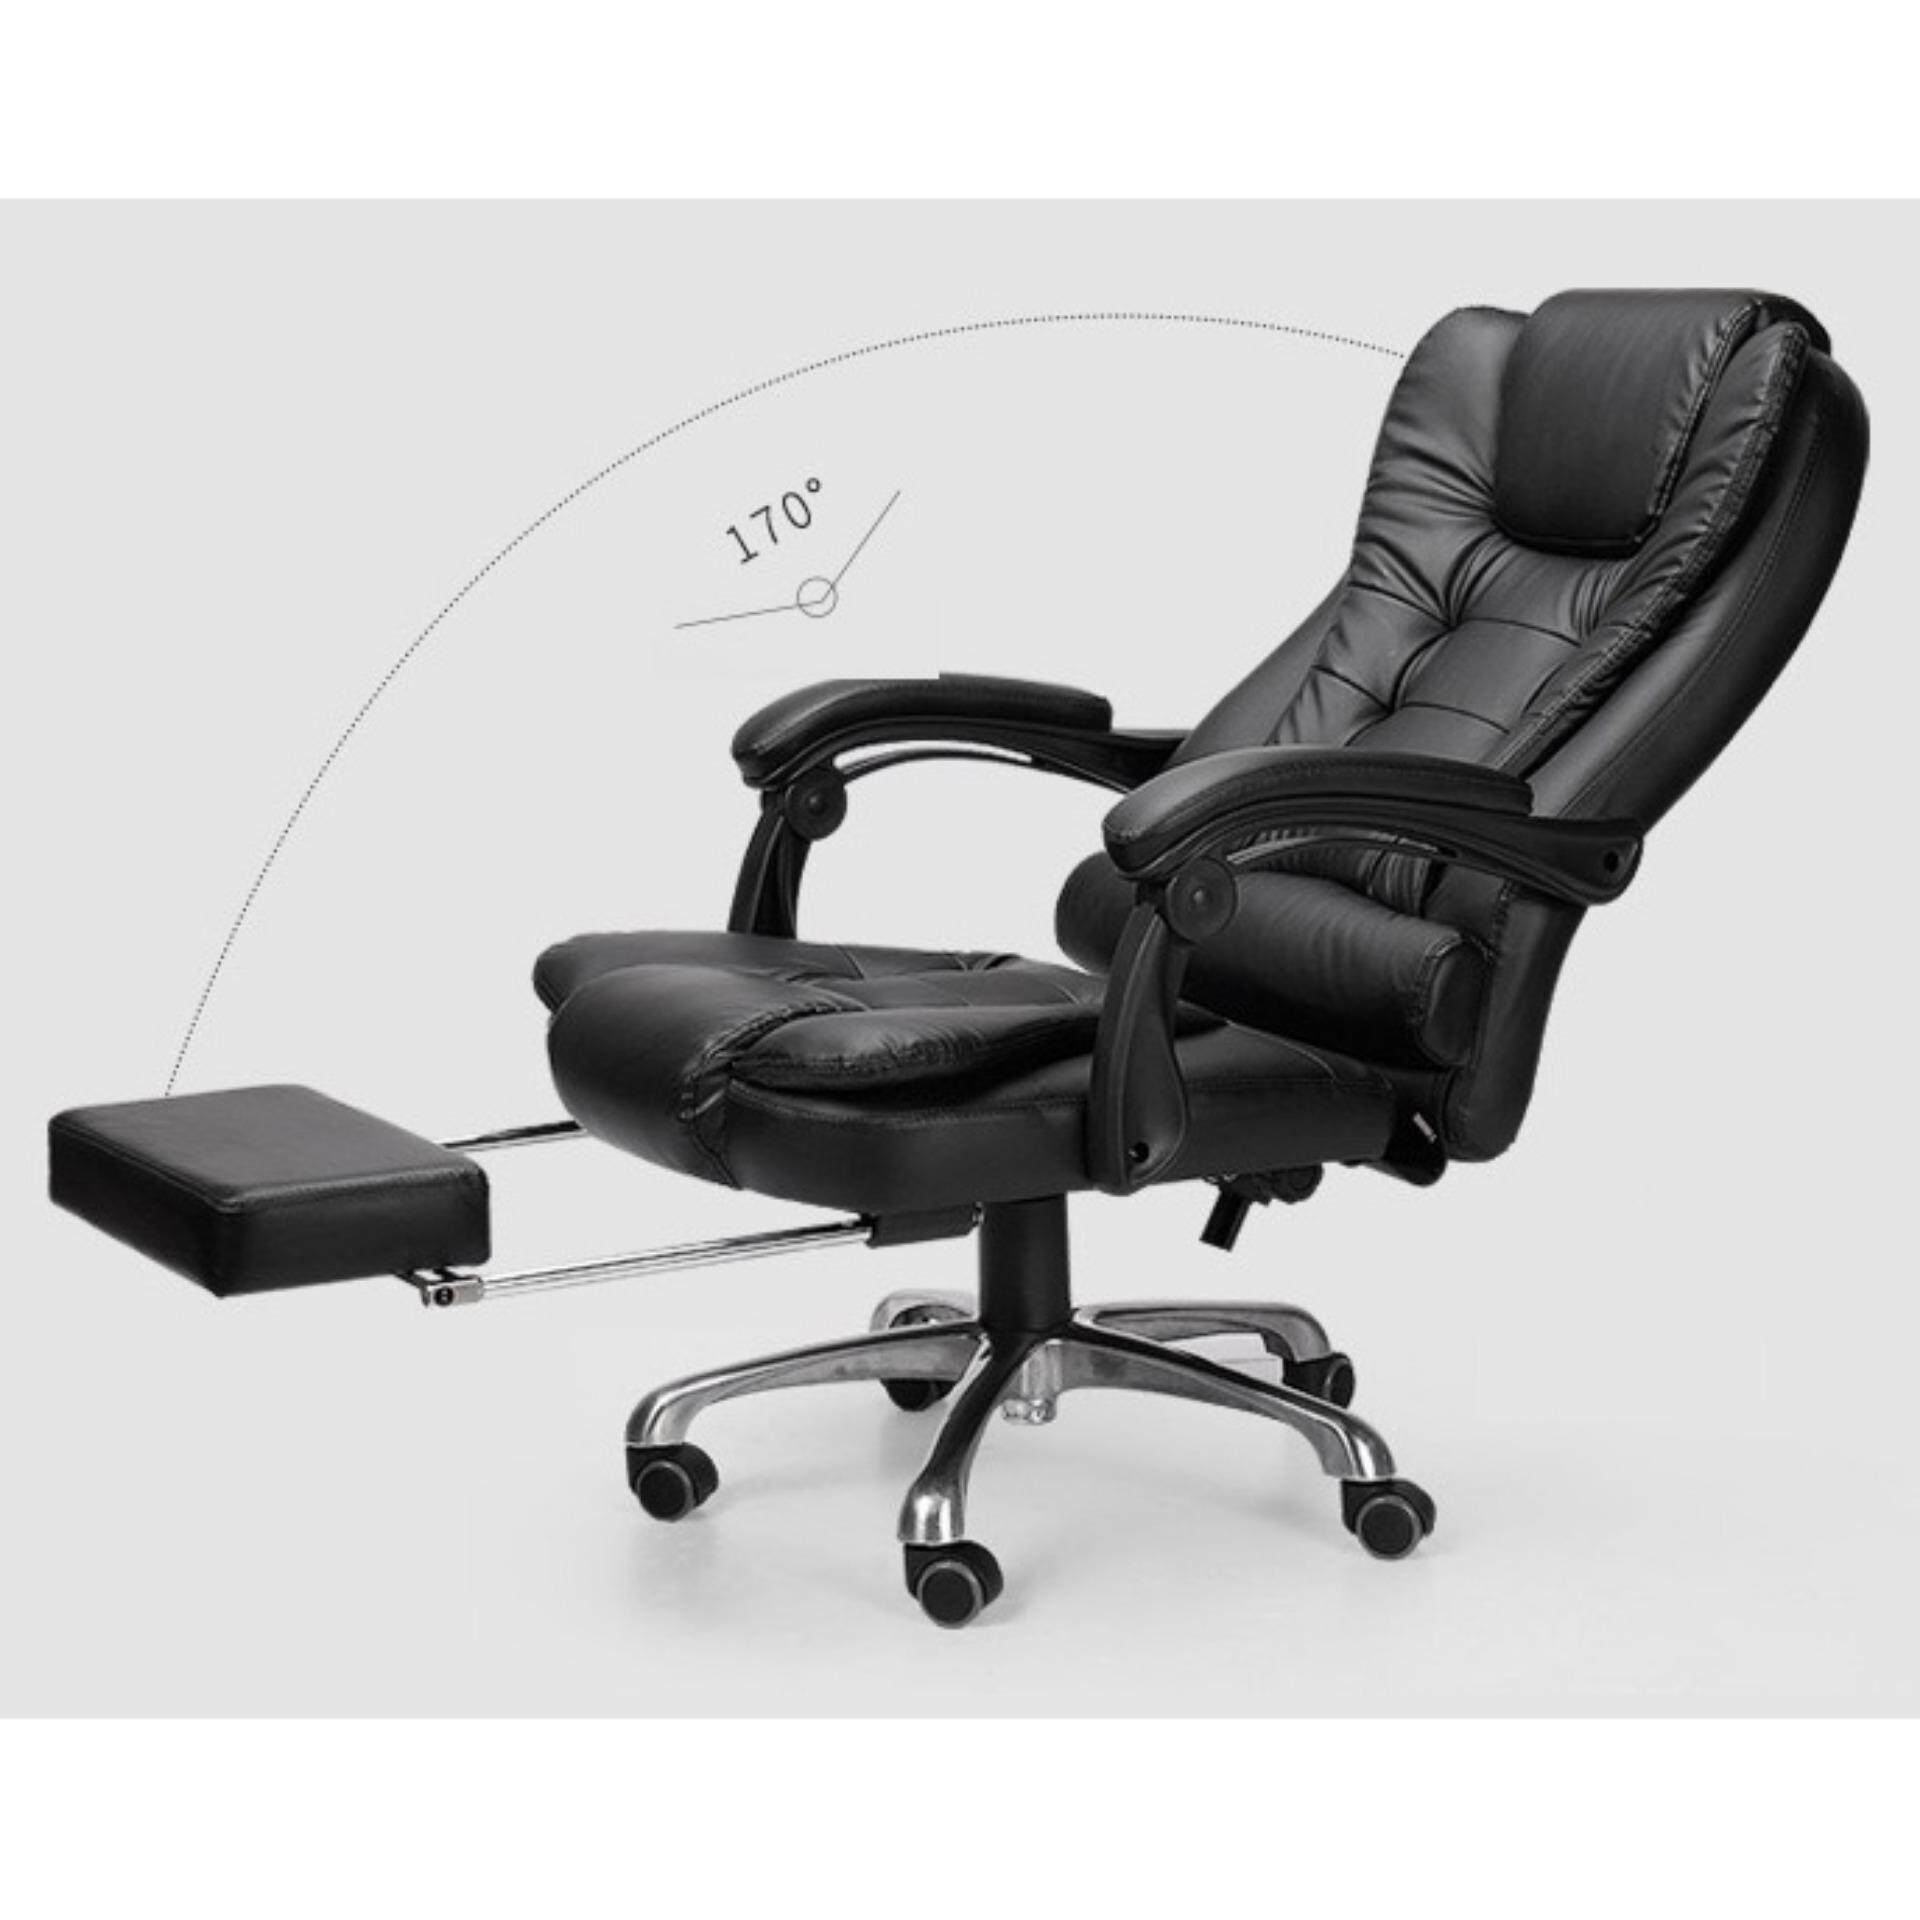 LvDouYa-High Quality Deluxe Professional PU Leather Office High Back Chair Boss Wheel Boss Chair  sc 1 st  Furniture Malaysia & LvDouYa-High Quality Deluxe Professional PU Leather Office High Back ...